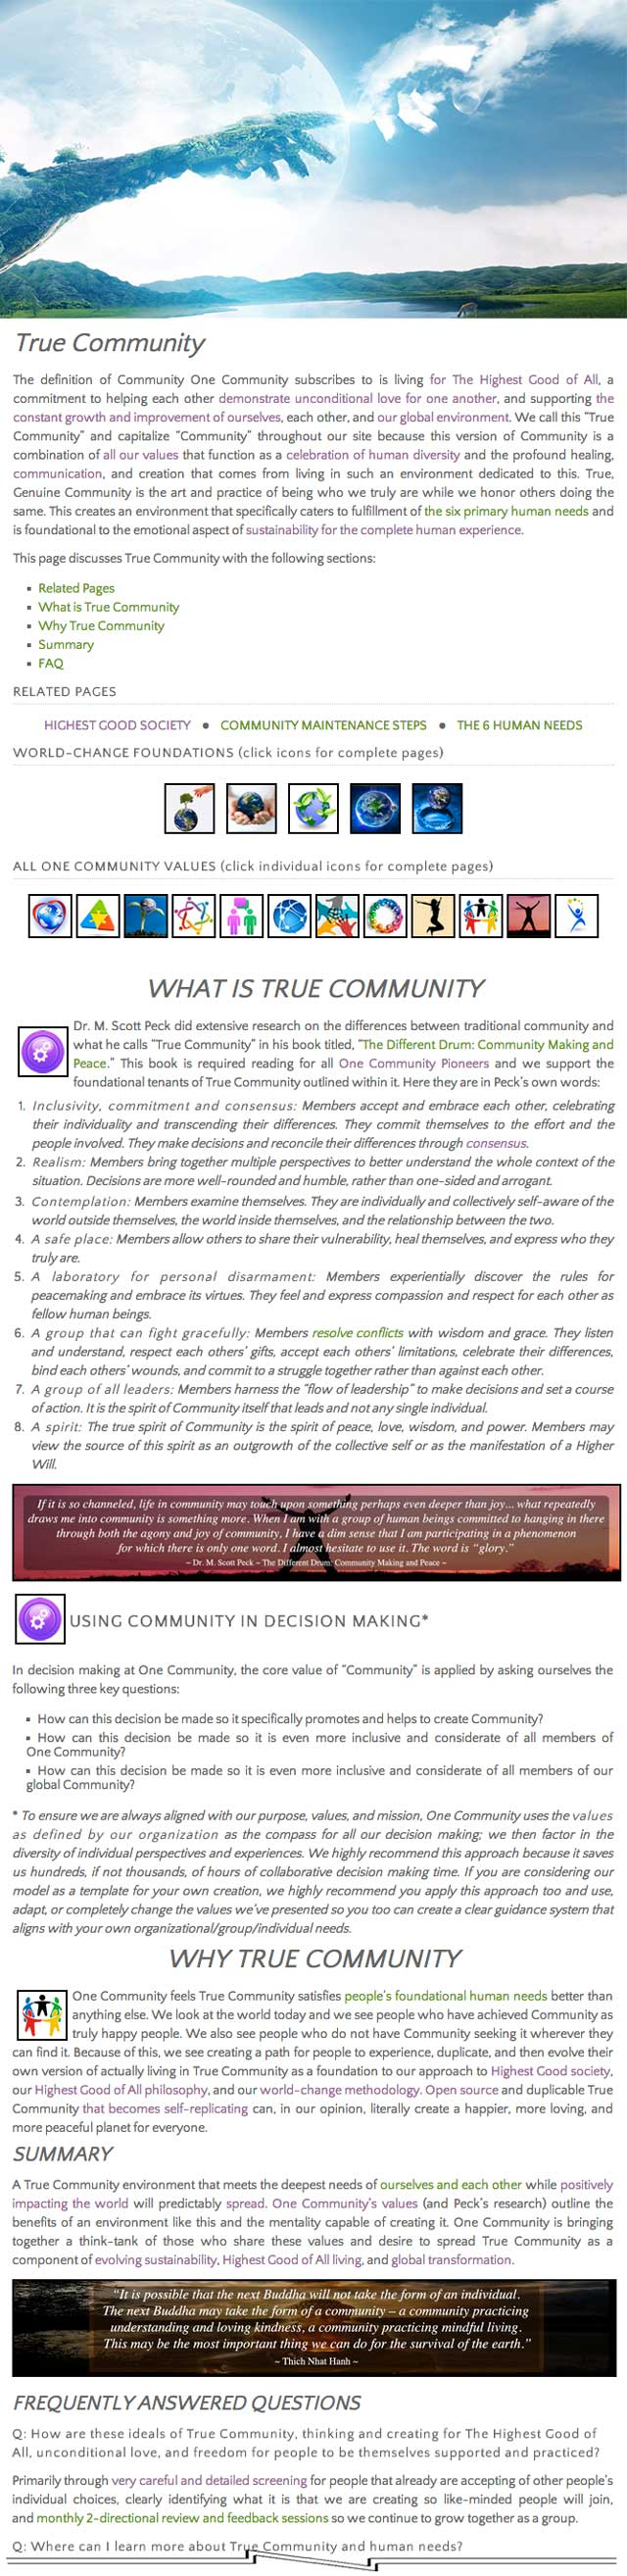 True Community page, One Community